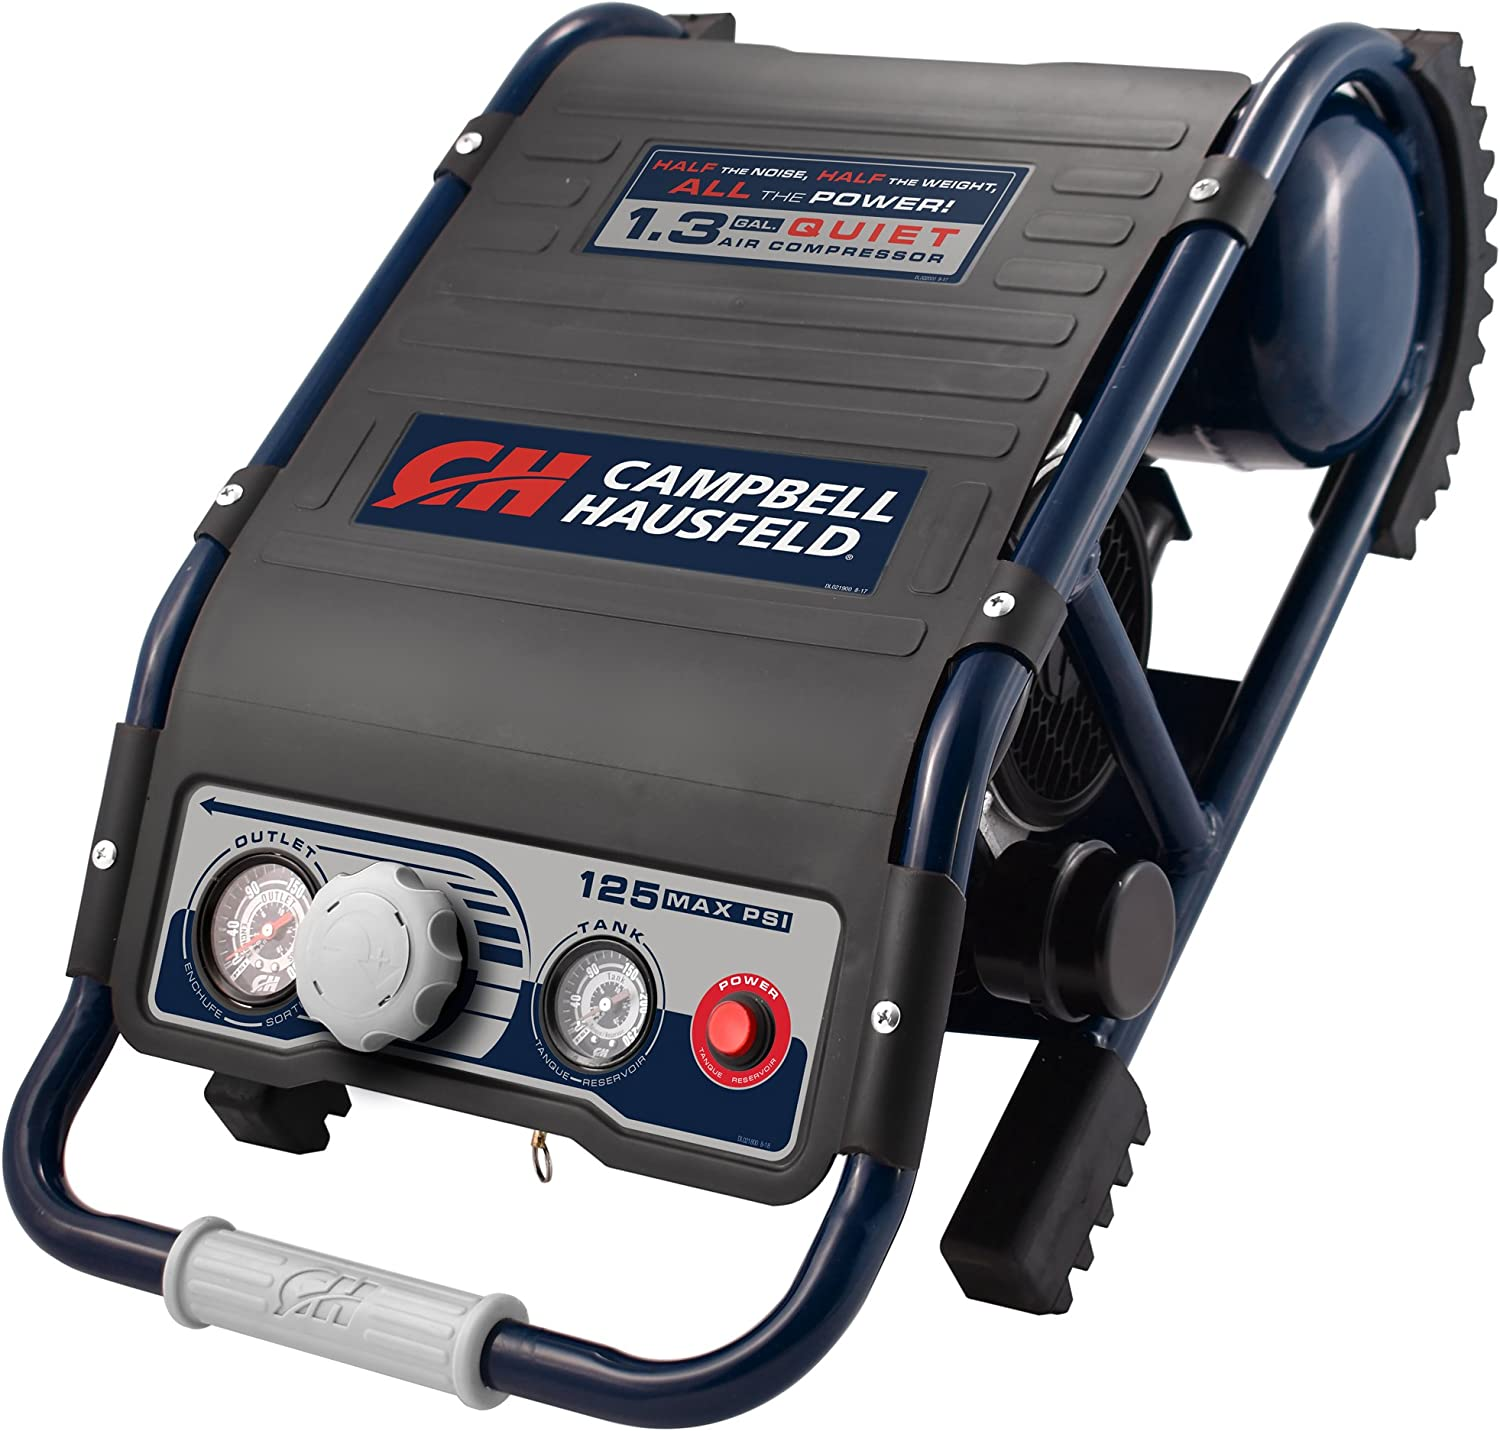 Quiet Air Compressor, Lightweight 29 Lbs, 1.3 gallon Slim Suitcase, Half The Noise, 4X The Life, All The Power (Campbell Hausfeld DC010500)